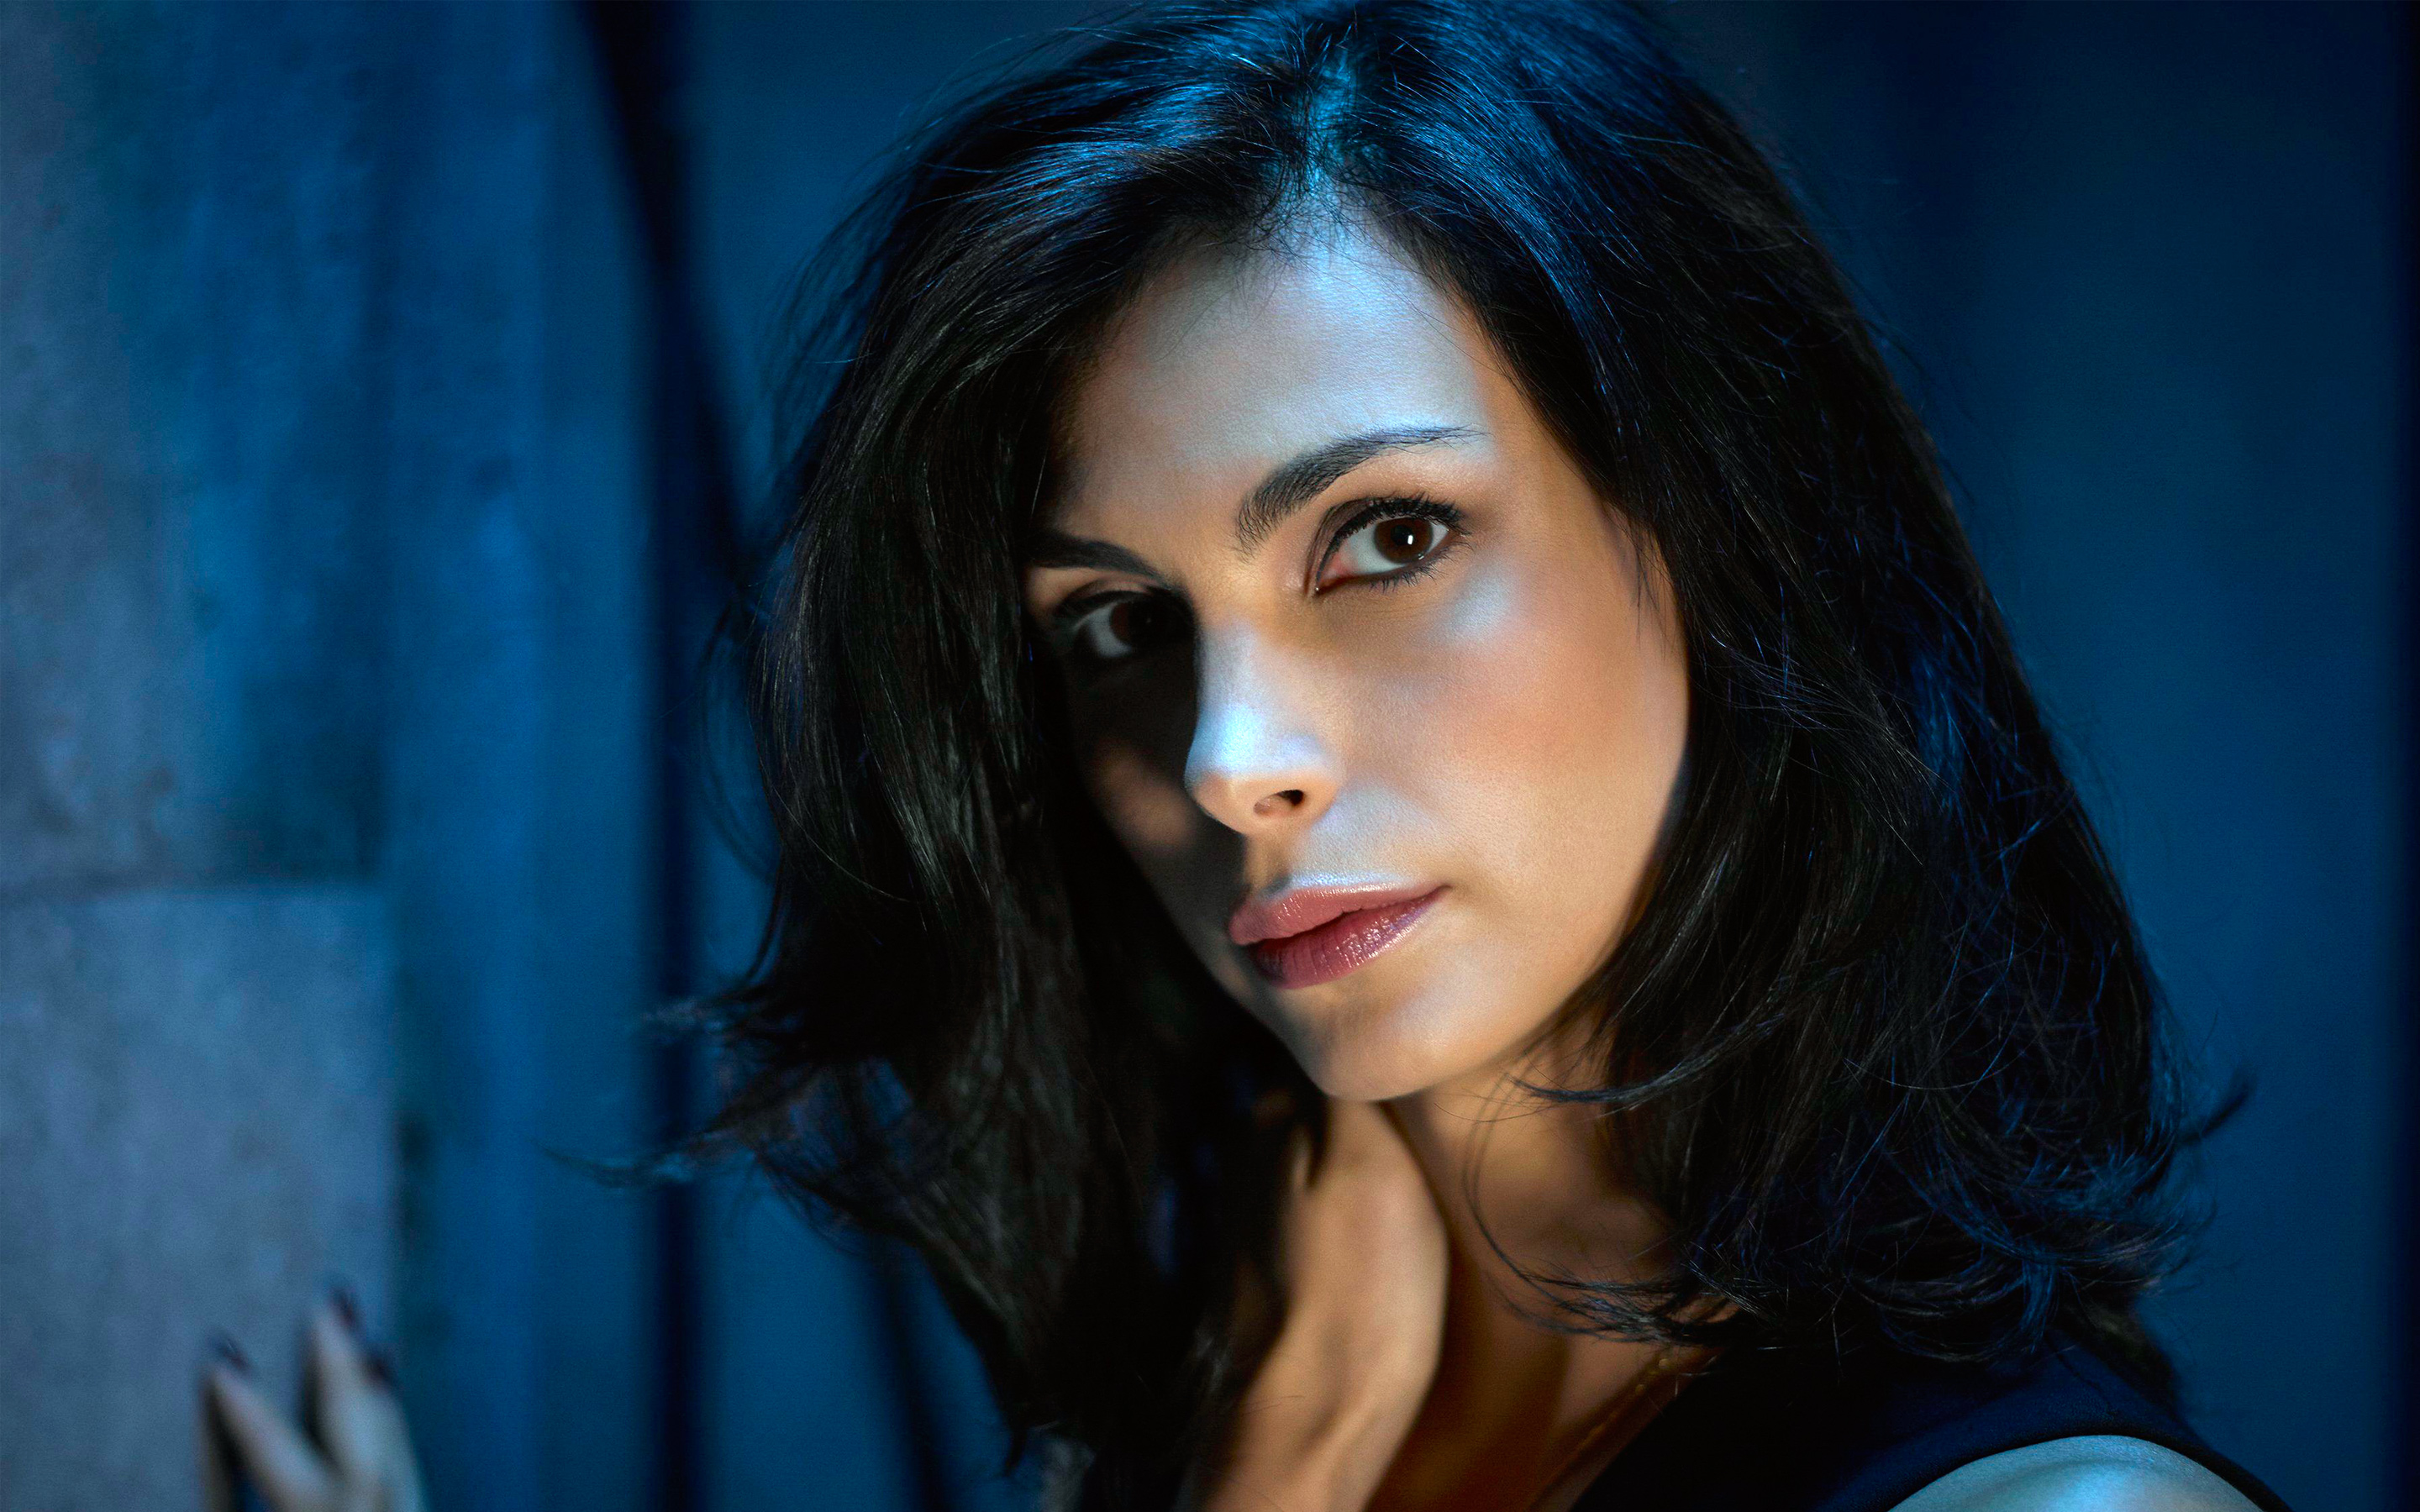 2880x1800 - Morena Baccarin Wallpapers 10